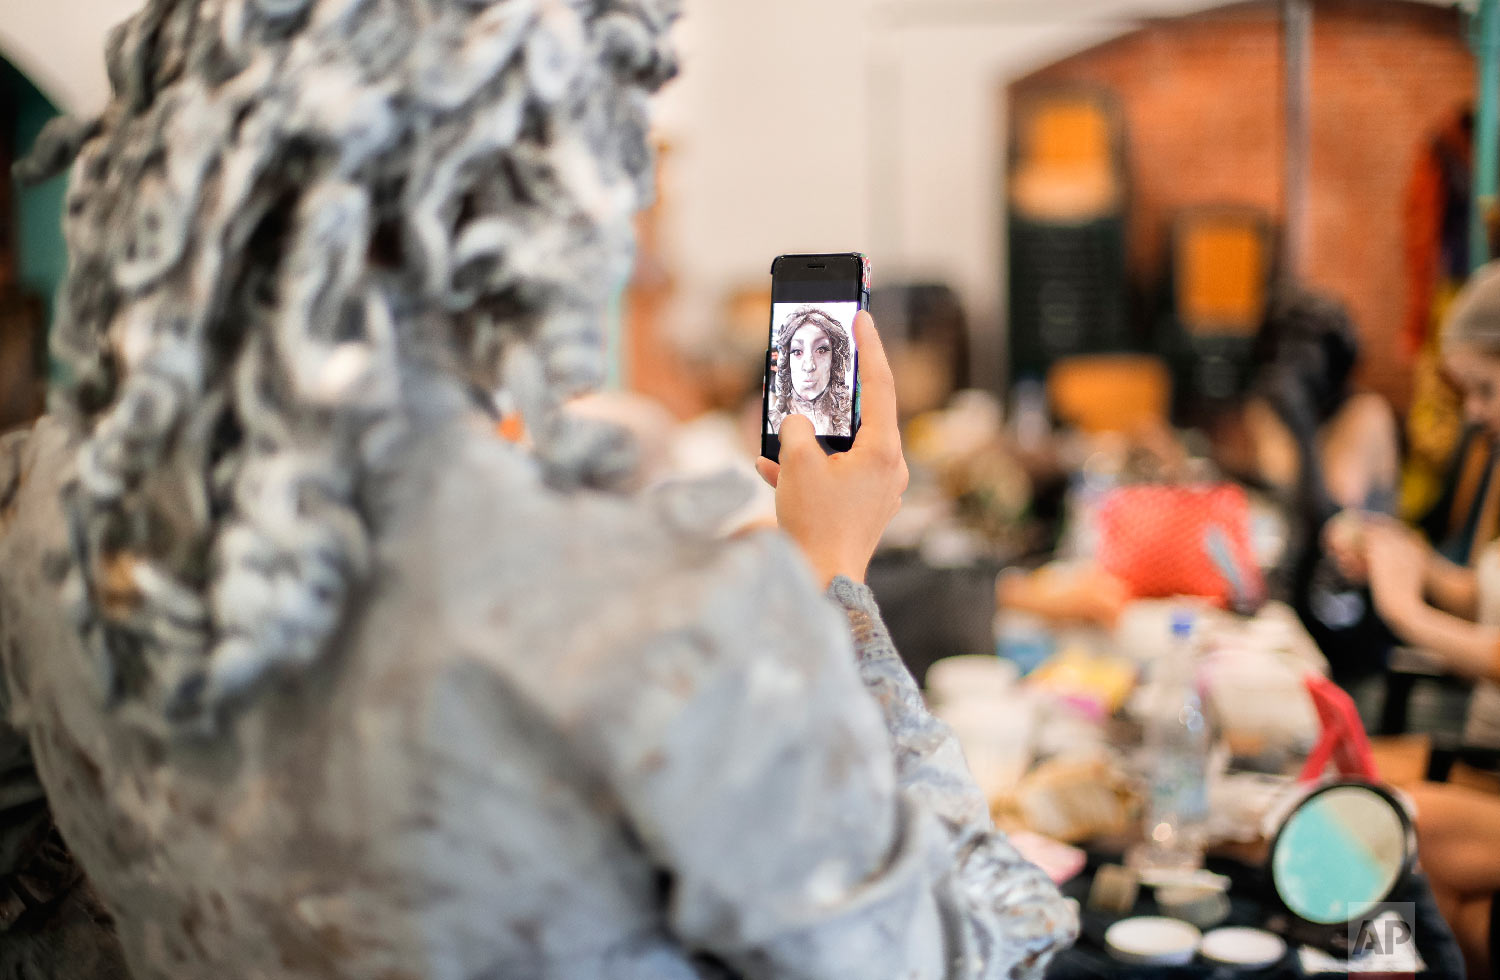 An artist of The Netherlands' Levend Theater takes a selfie before performing her Angel character during the Living Statues International Festival, in Bucharest, Romania on Tuesday, May 22, 2018.(AP Photo/Vadim Ghirda)